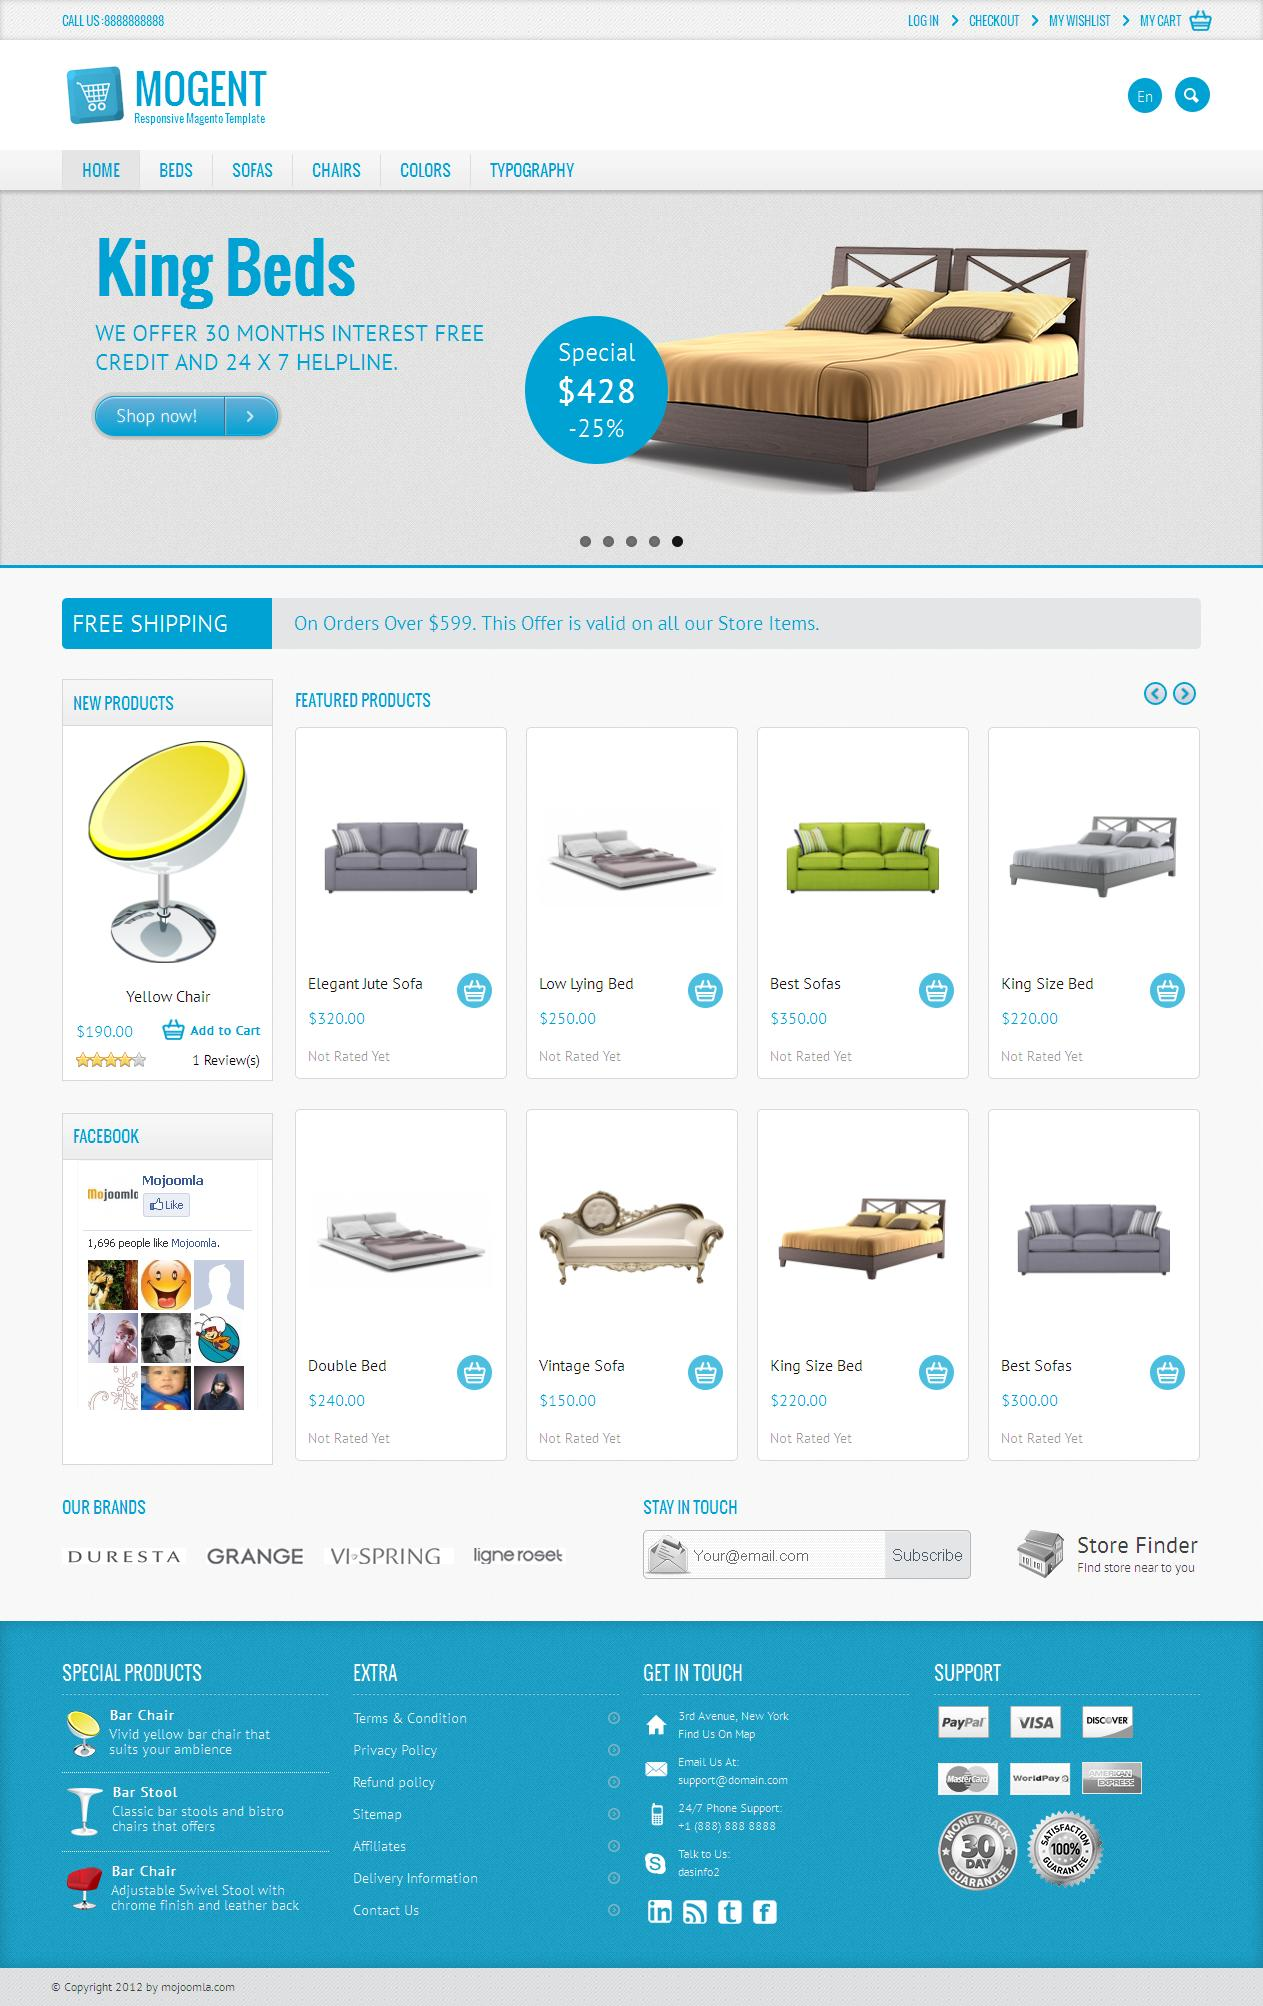 Complete Magento eCommerce Site Setup by dasinfomedia - 45206